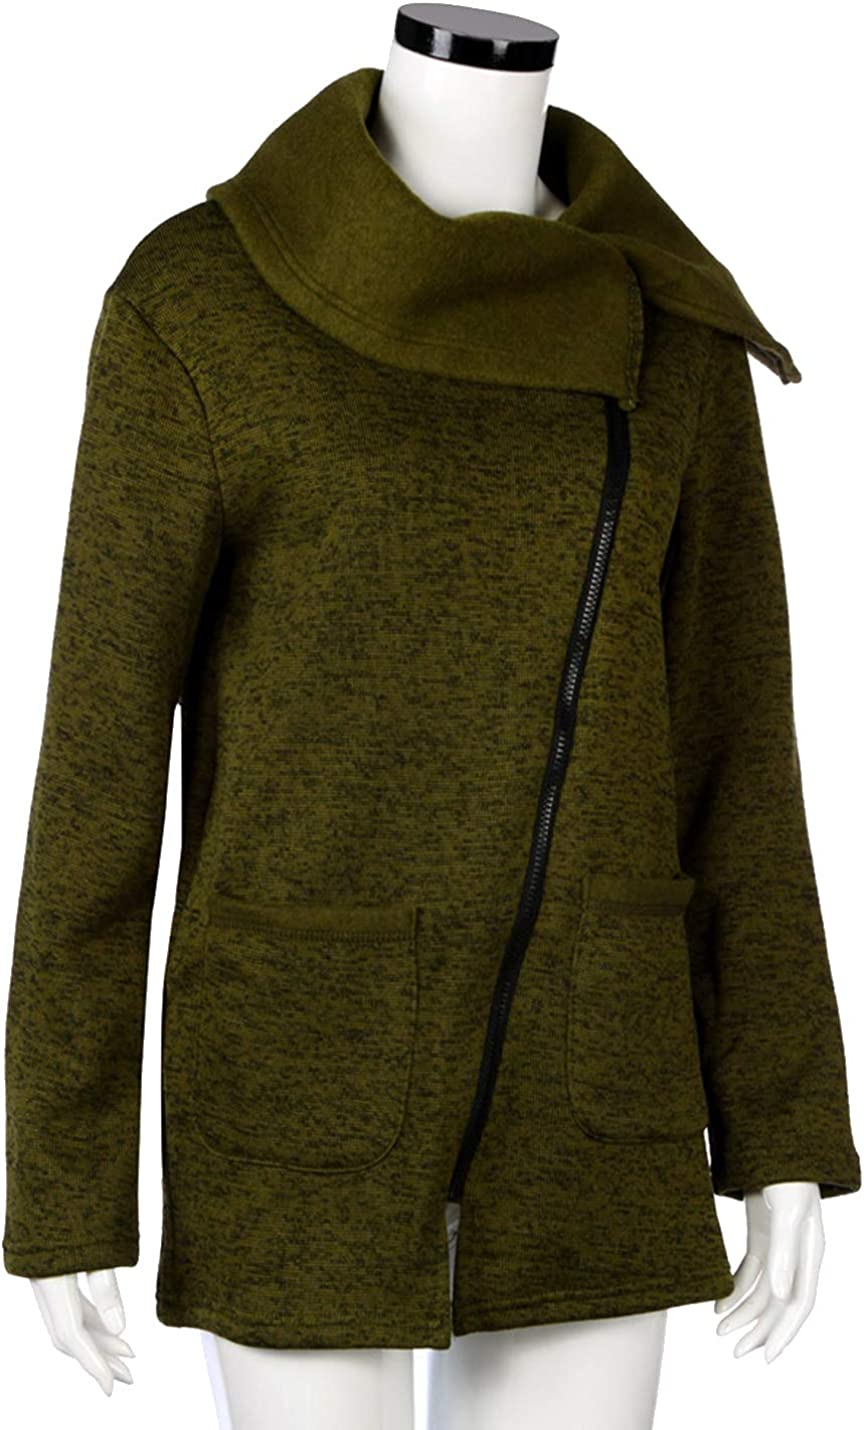 Liengoron Womens Casual Long Sleeve Solid Color Cotton Side Zipper Lapel Jacket Army Green, Large